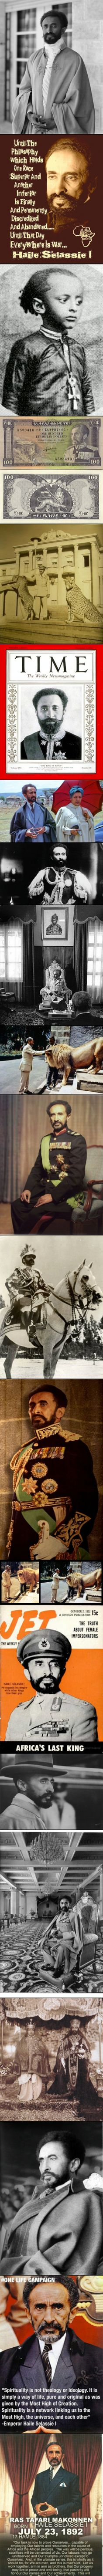 Haile Selassie (23 July 1892 – 27 August 1975), born Tafari Makonnen Woldemikael, was Ethiopia's regent from 1916 to 1930 and Emperor of Ethiopia from 1930 to 1974. He was the heir to a dynasty that traced its origins by tradition from King Solomon and Queen Makeda, Empress of Axum, known in the Abrahamic tradition as the Queen of Sheba. Haile Selassie is a defining figure in both Ethiopian and African history. via @iron_light